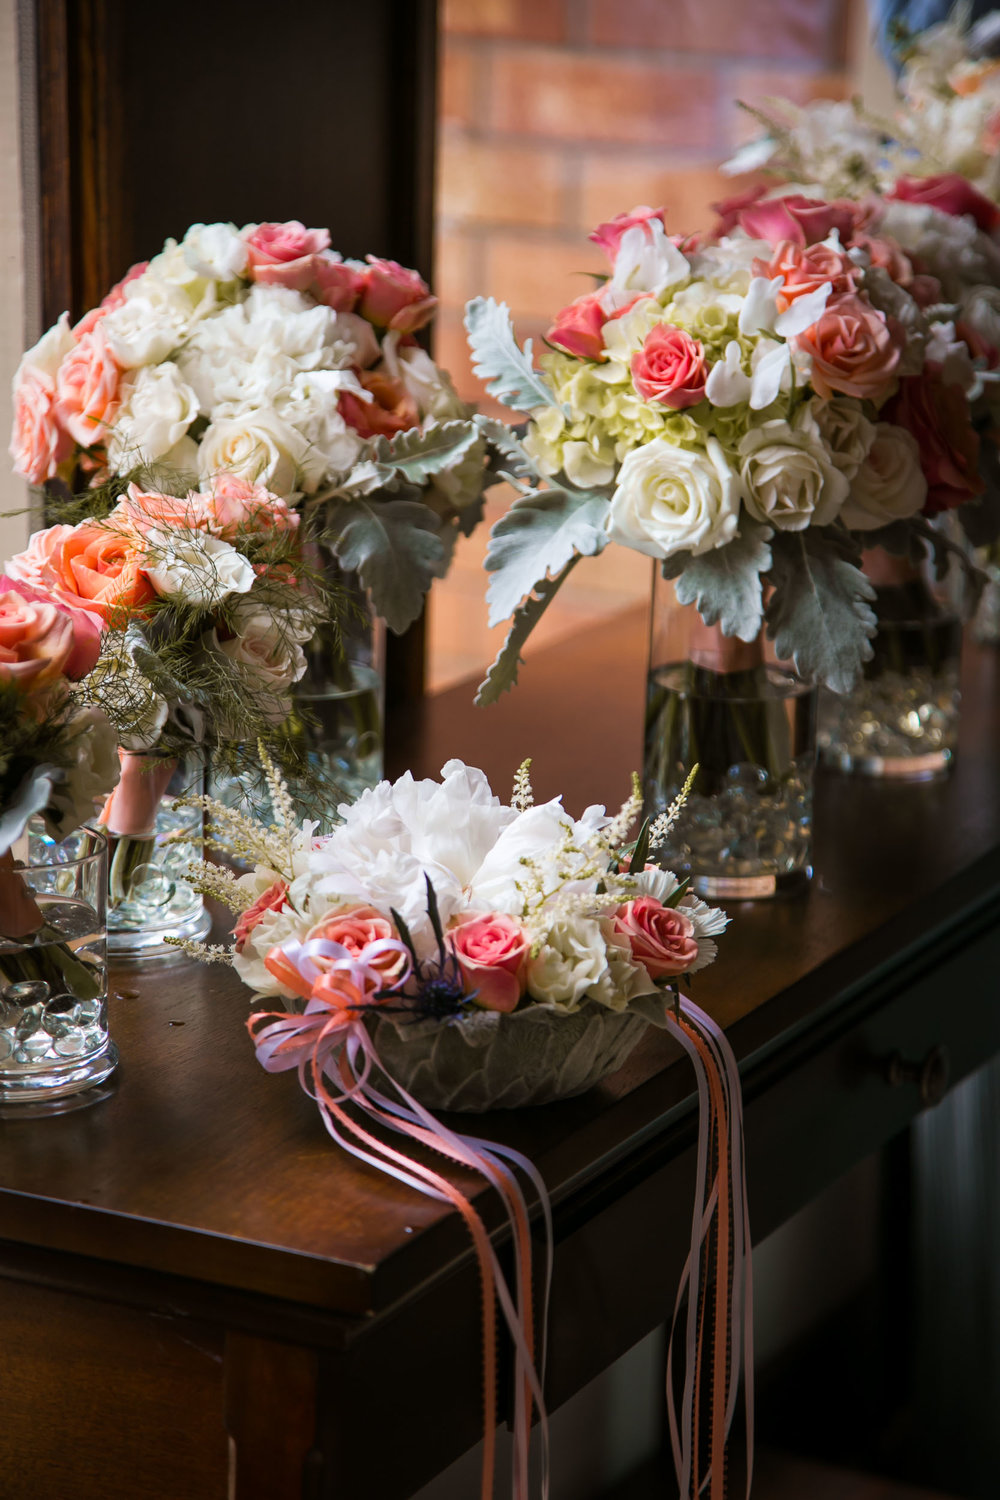 Raleigh Wedding Photographer | G. Lin Photography | Flower arrangement on table at church